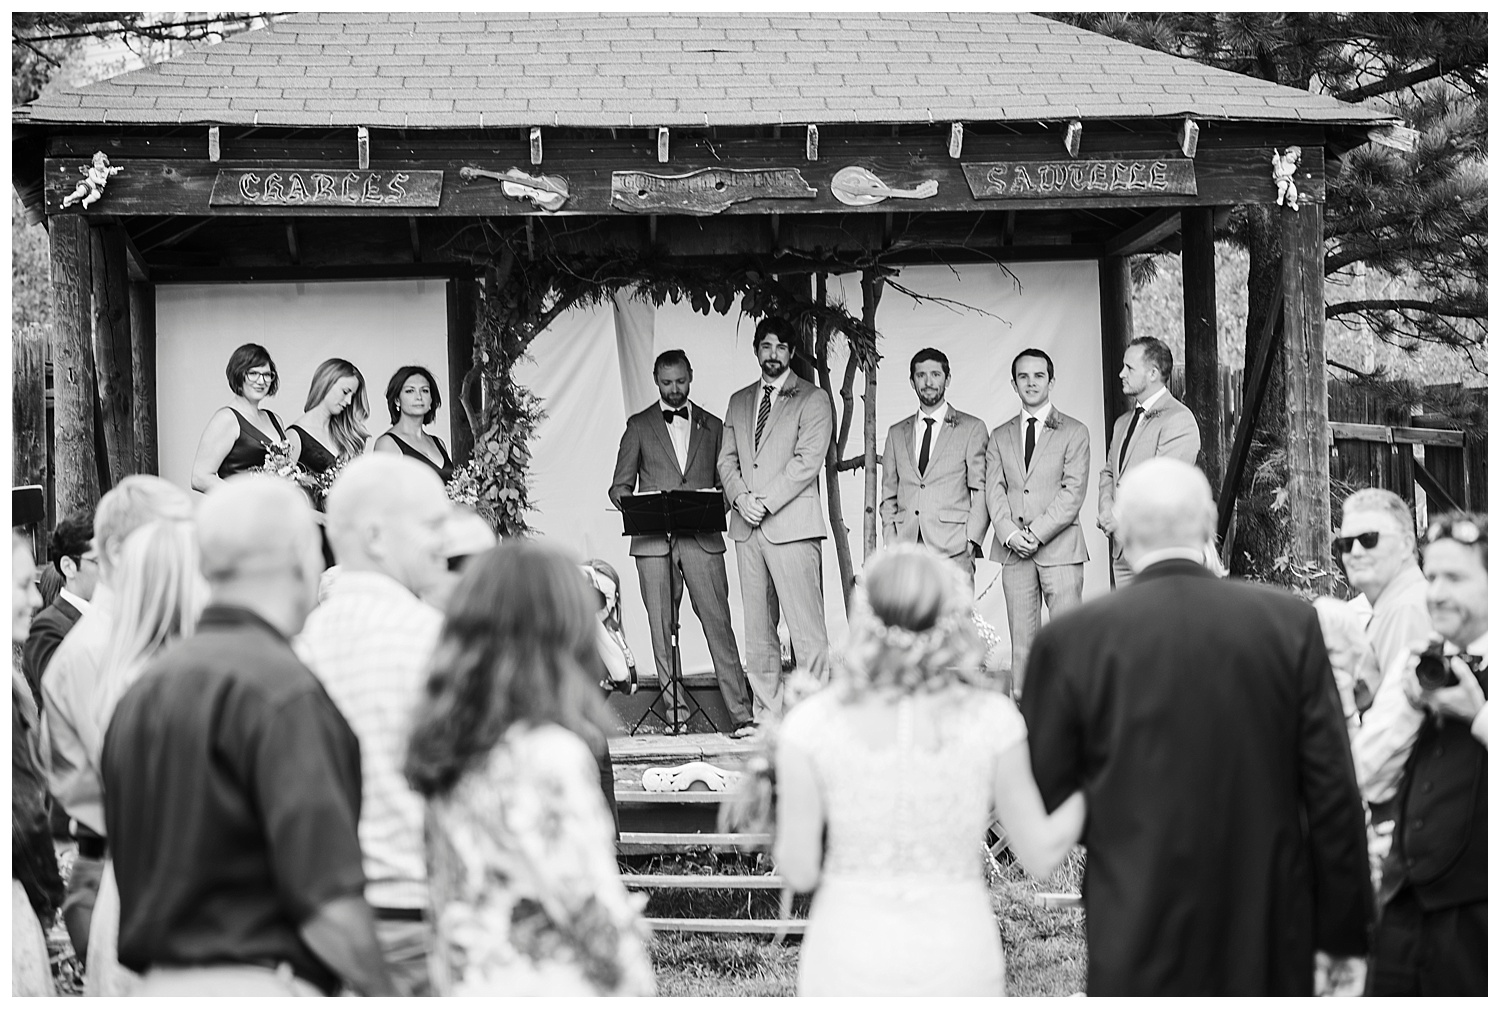 Gold_Hill_Inn_Wedding_Boulder_CO_Apollo_Fields_451.jpg